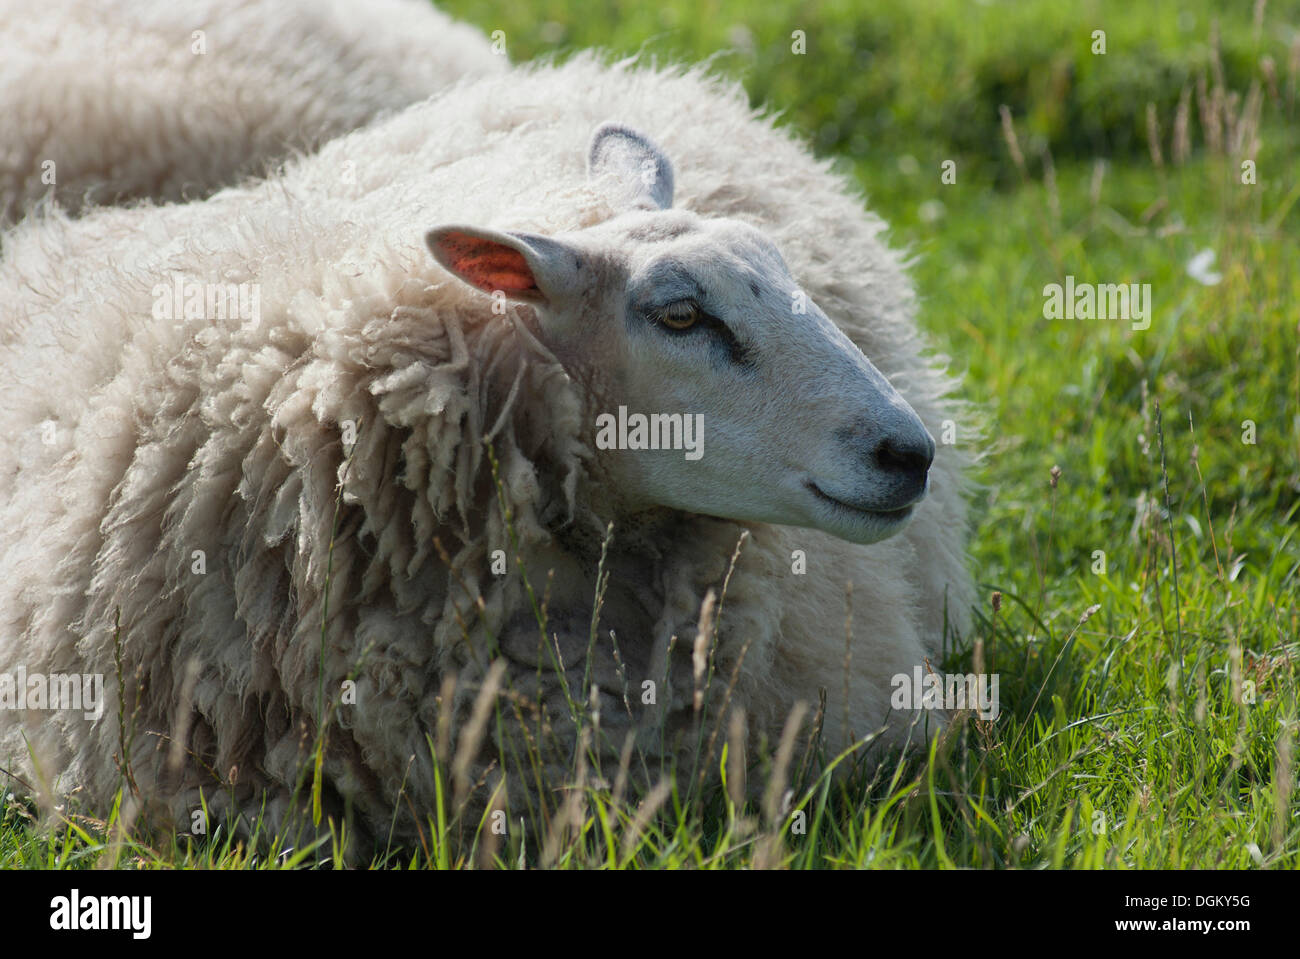 Sheep resting on a meadow, Atlantic Coast, Normandy, France, Europe - Stock Image